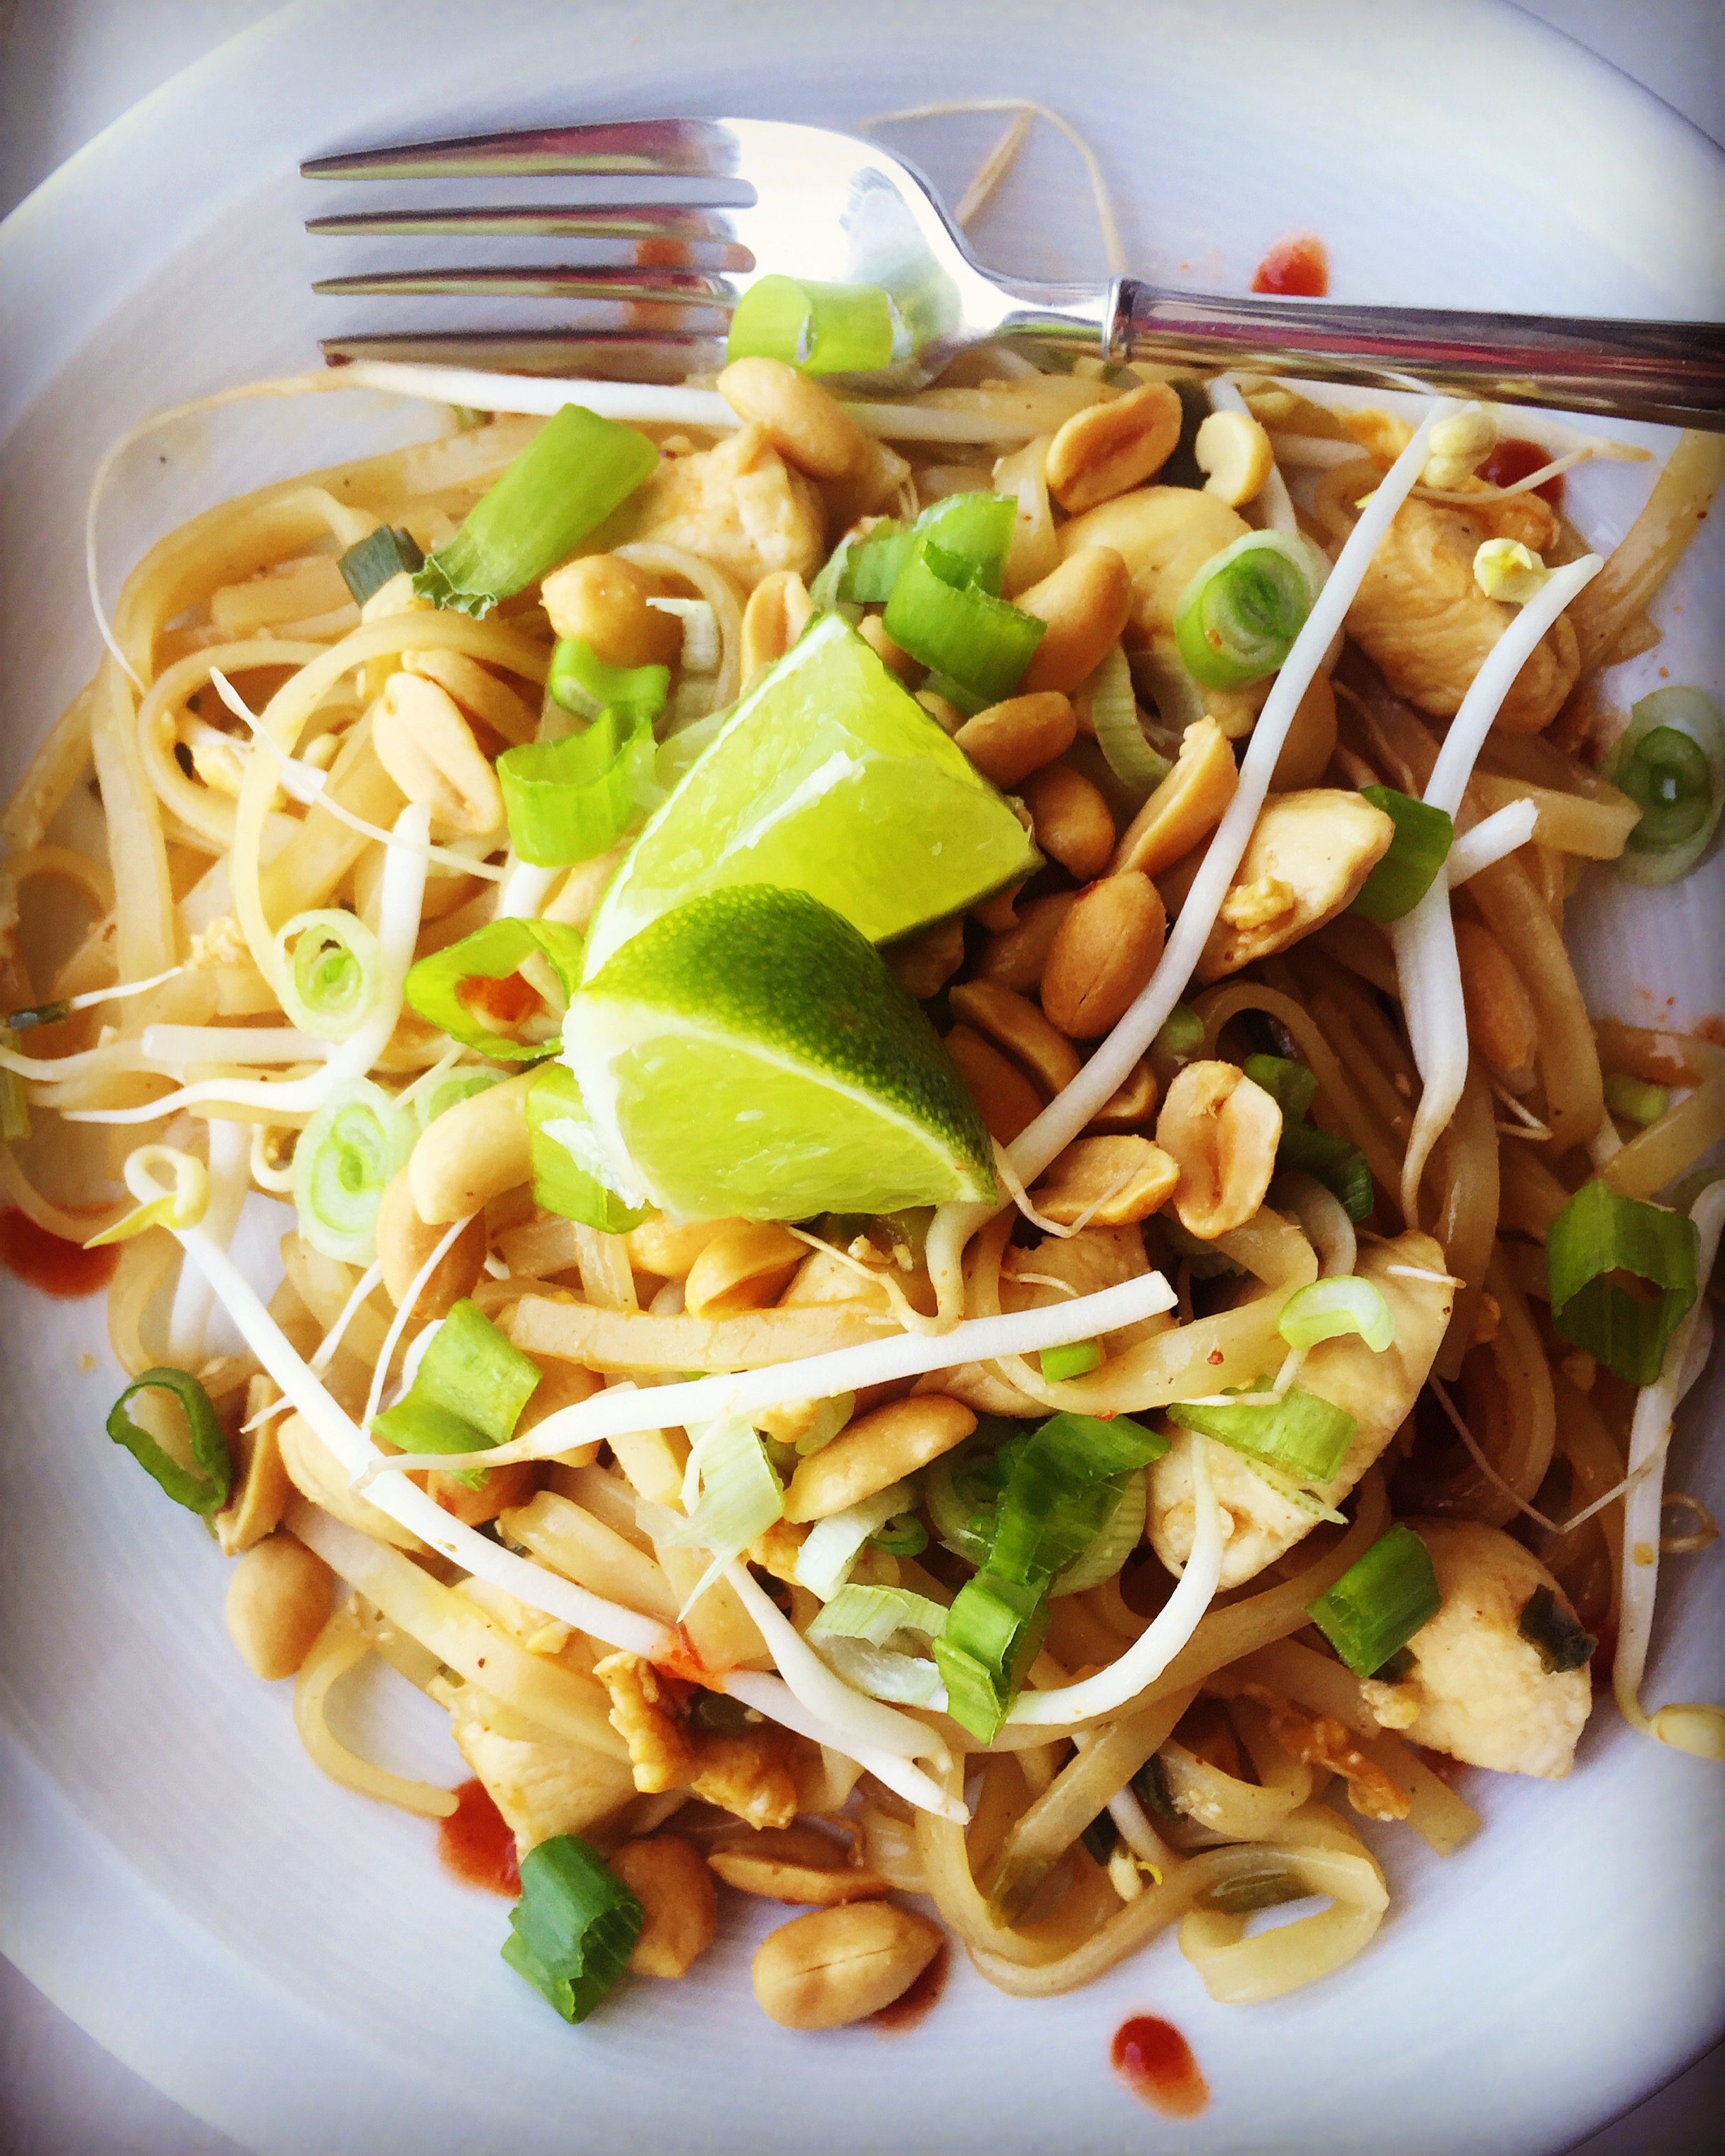 Restaurant Meals at Home: Pad Thai